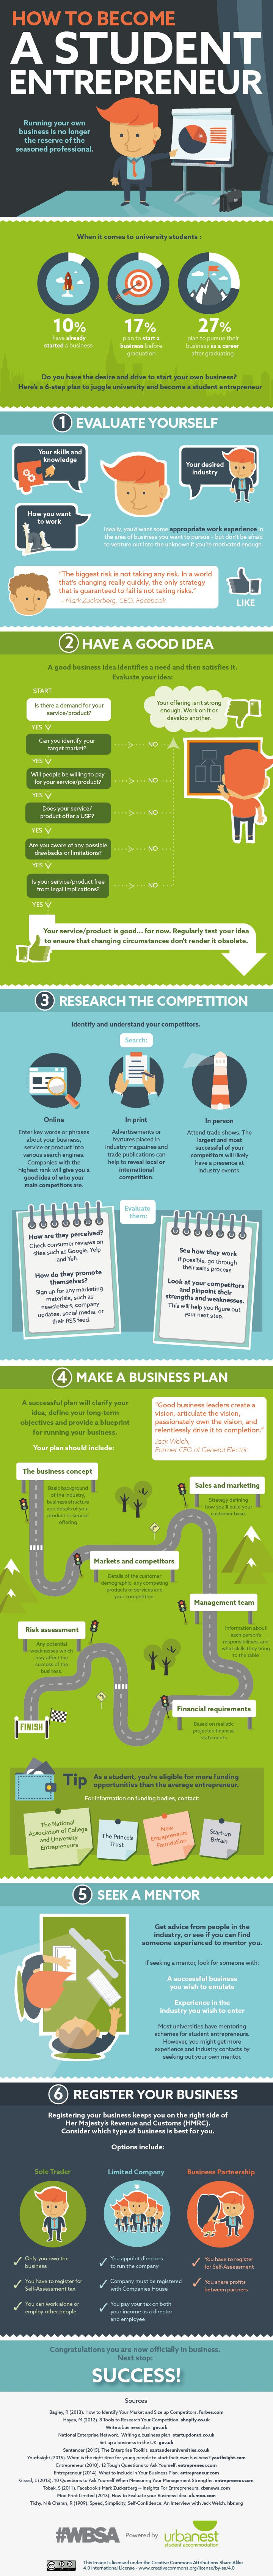 how-to-become-a-student-entrepreneur-infographic